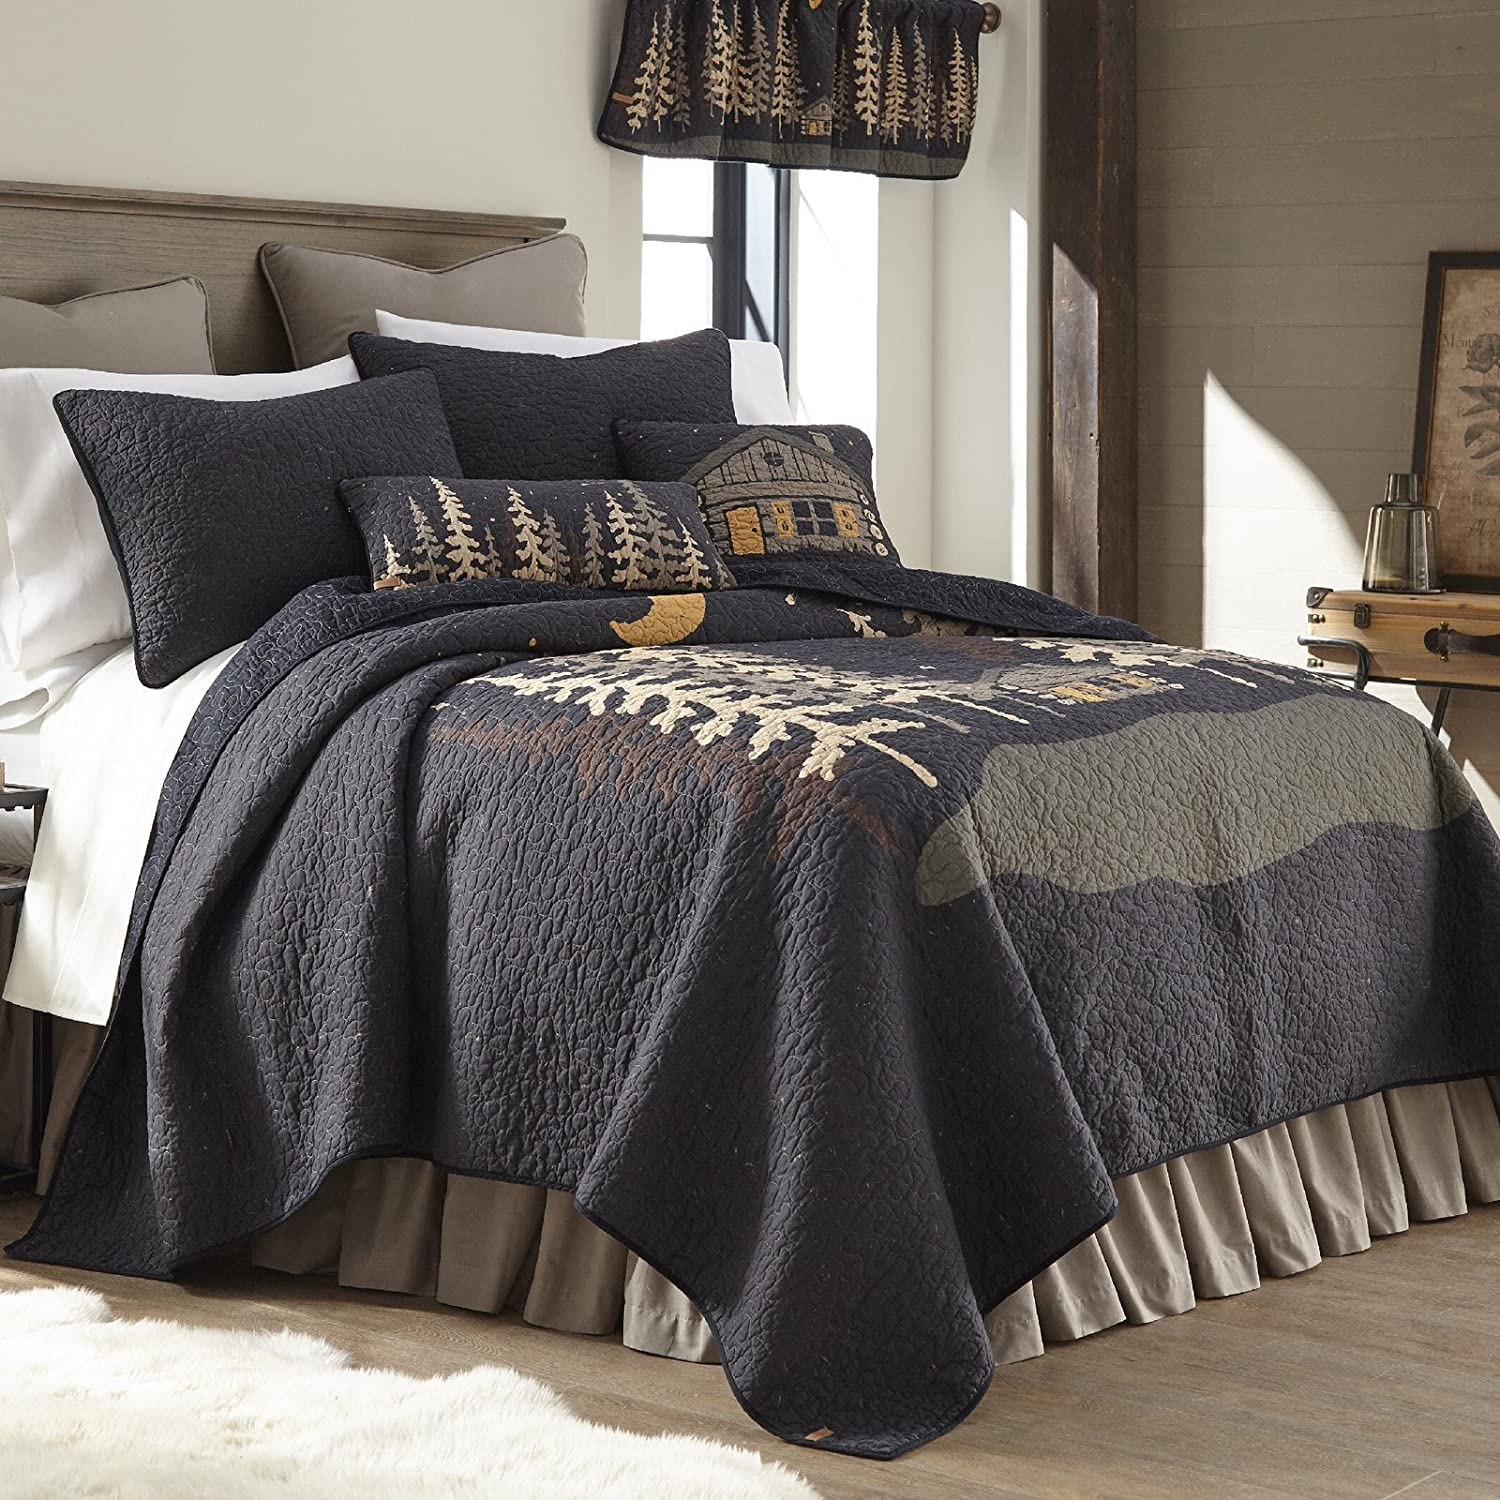 King Quilt - Moonlit Cabin by Donna Sharp - Lodge Quilt with Forest Pattern - Machine Washable